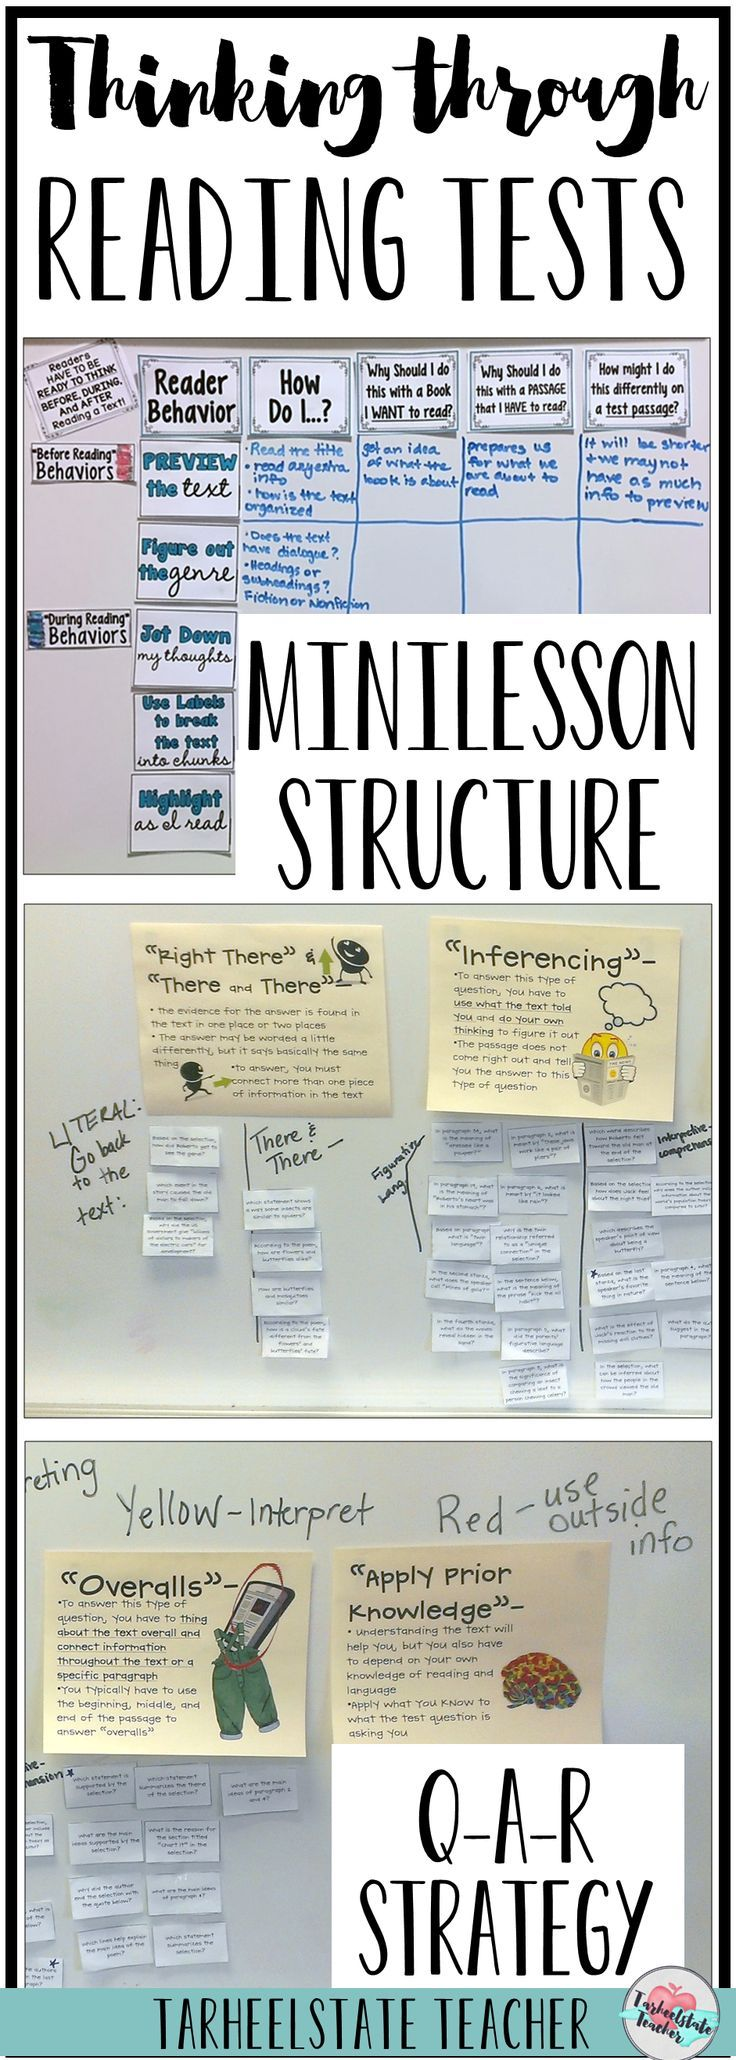 "Is it reading test prep season again? This test-talk minilesson structure for helping students understand the design of standardized reading tests, question-answer relationship strategy (QAR anchor chart), and 4 step reading test strategy for answering questions comes in handy every year for our reading test prep strategies unit to prepare for standardized reading comprehension tests. You'll want to include this ""Thinking Through Reading Tests"" resource into your reading test revie"